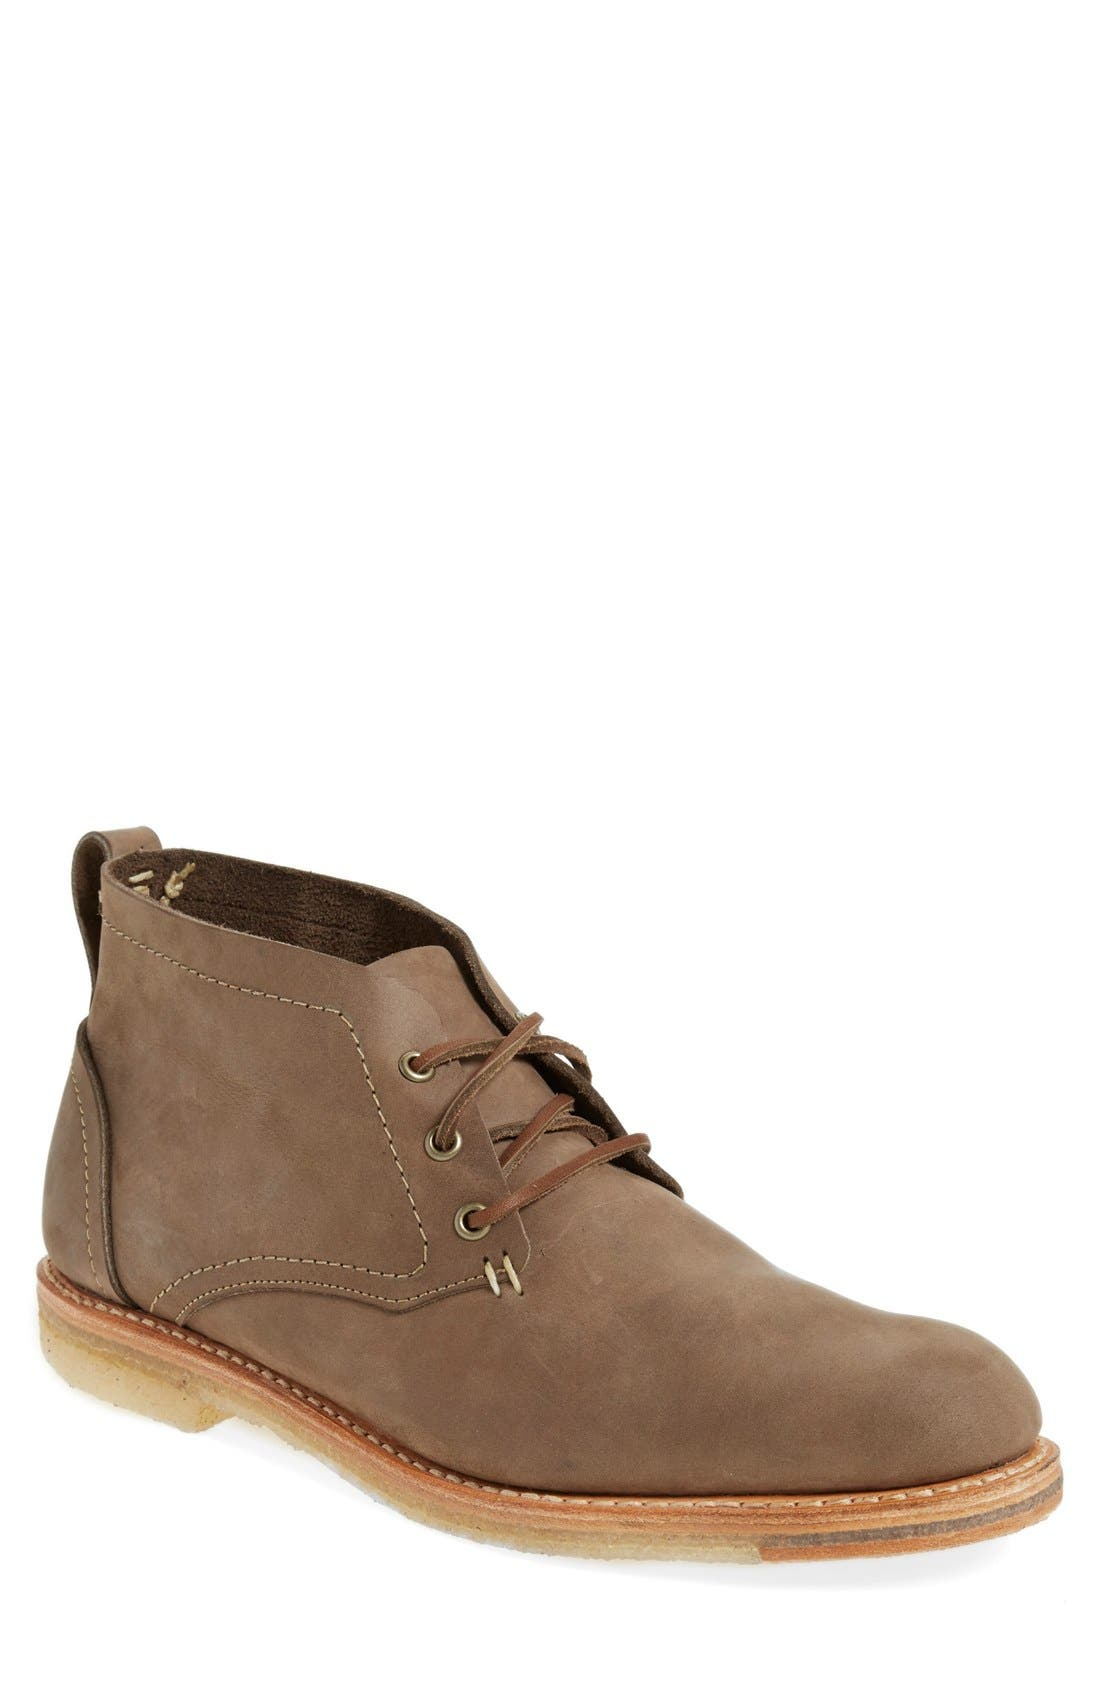 Alternate Image 1 Selected - Allen Edmonds 'Leawood' Chukka Boot (Men)